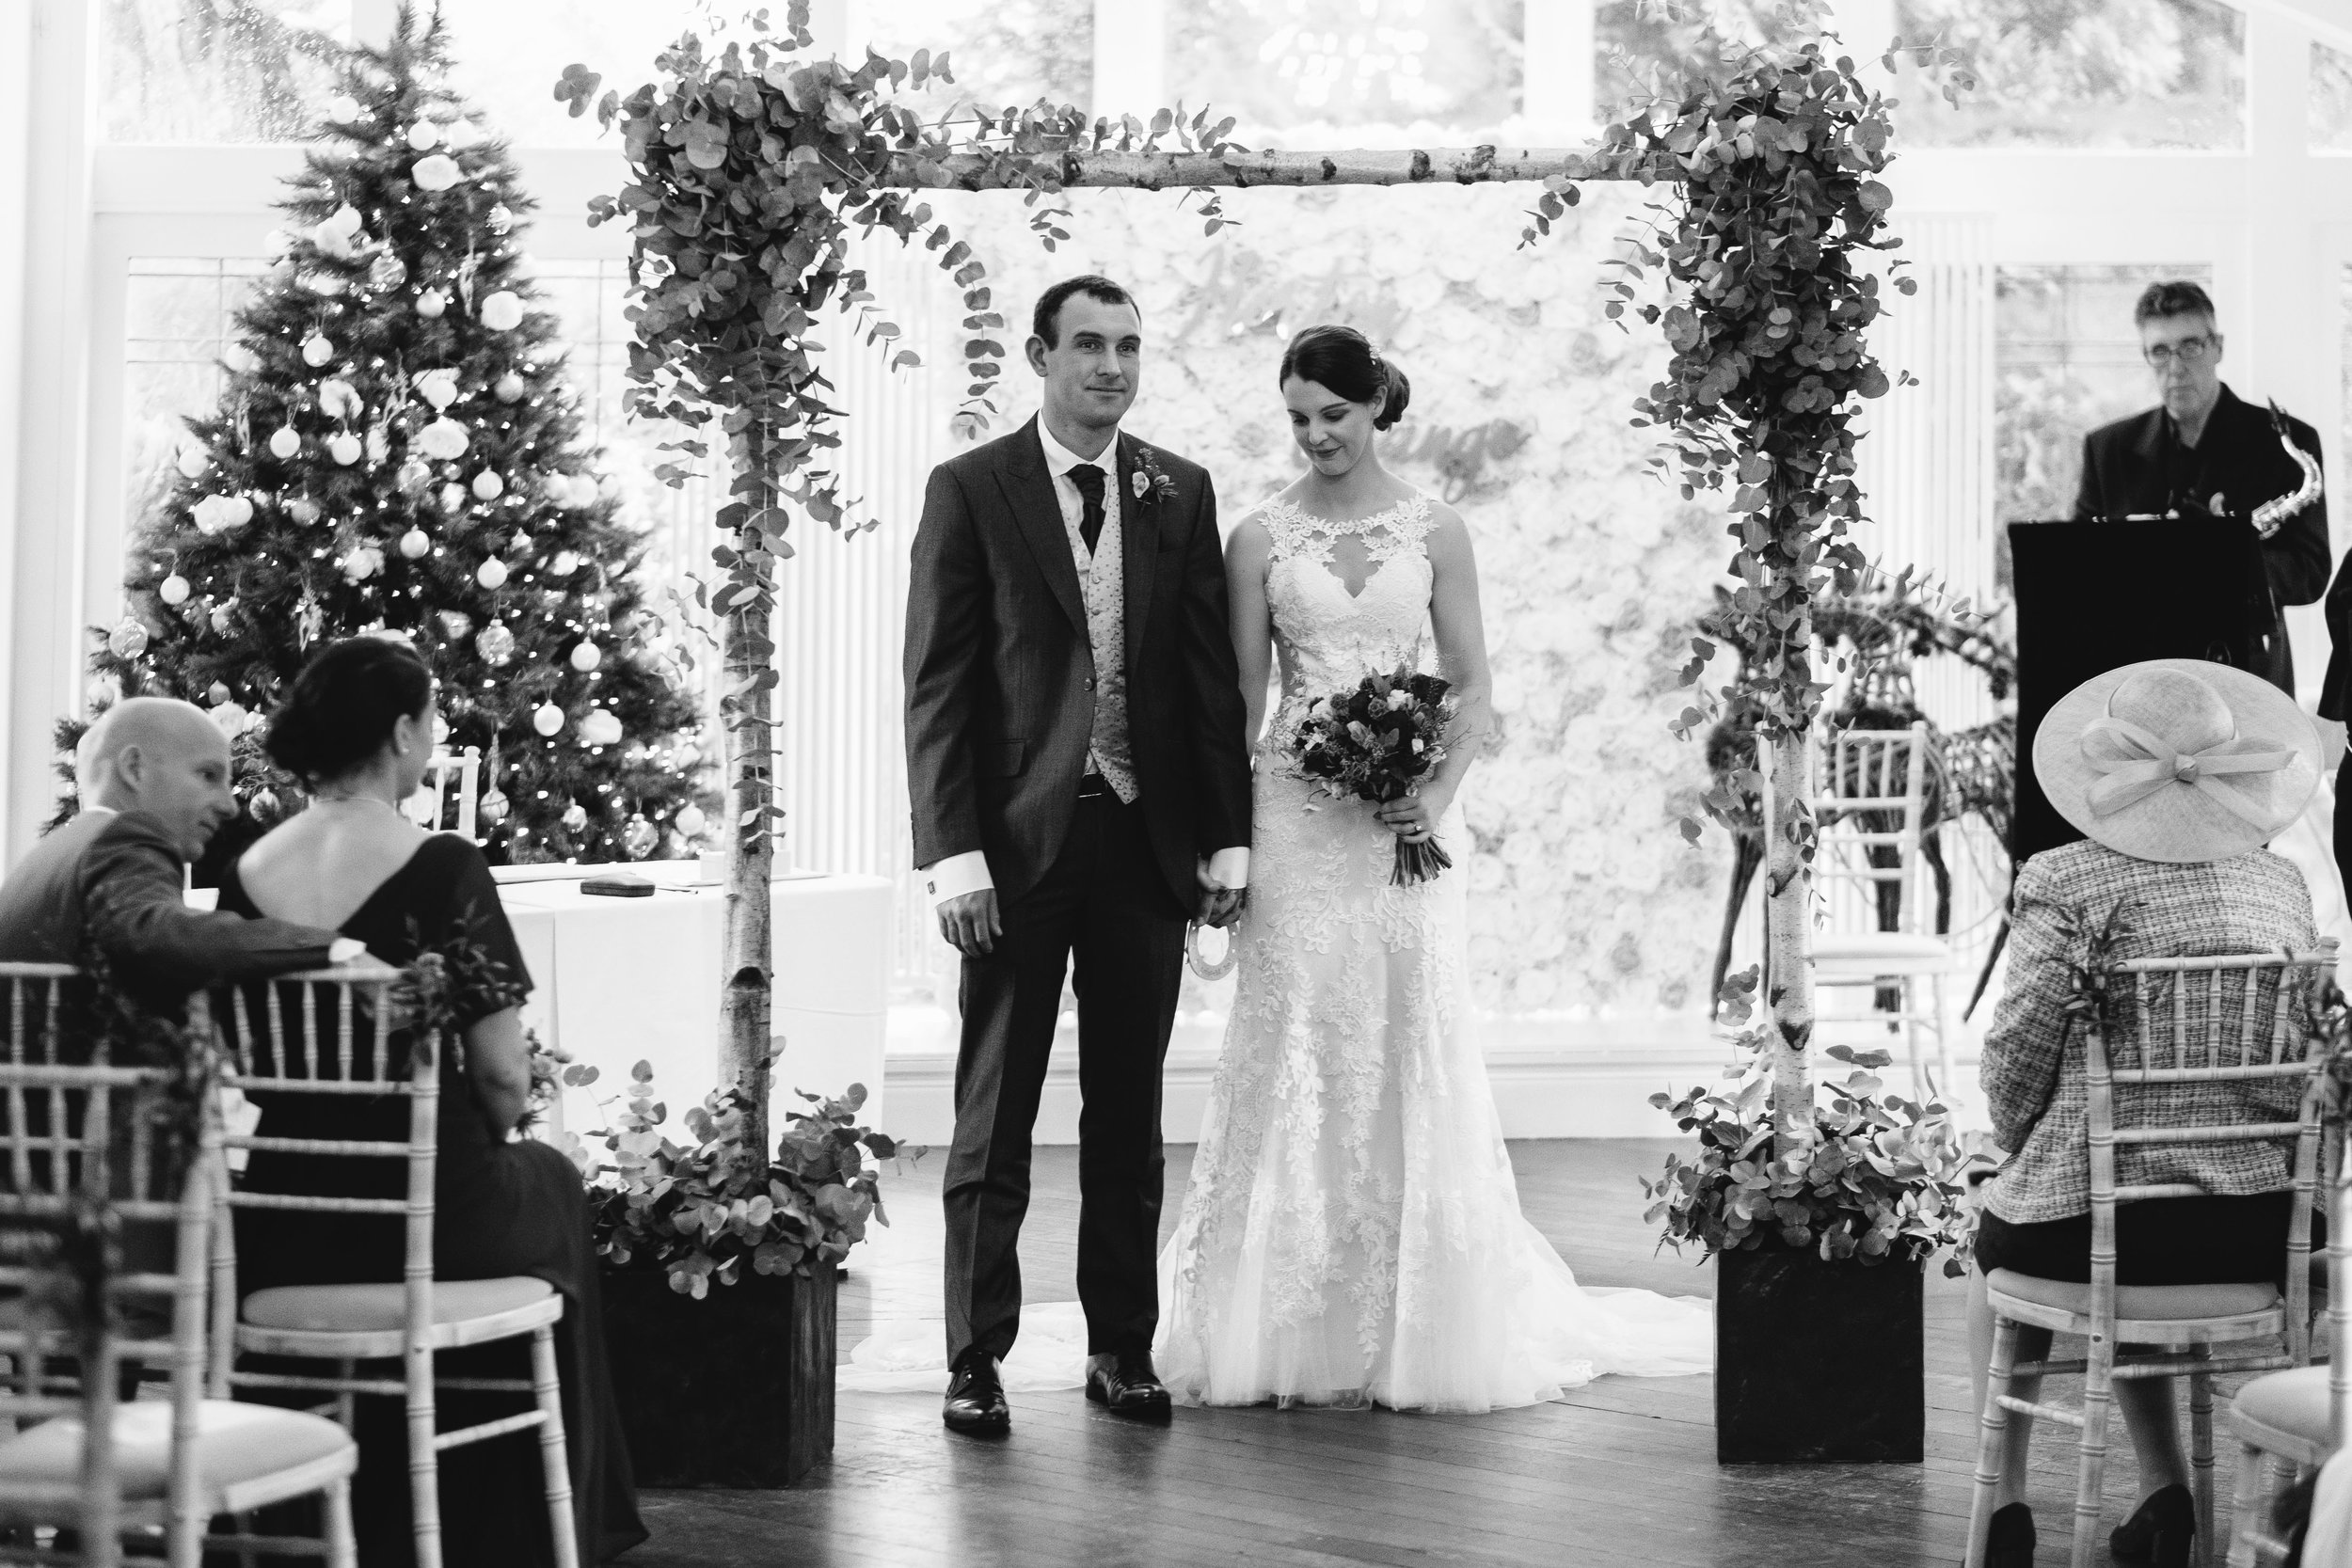 A black and white photo of the bride and groom standing under a flower arch at Horton Grange